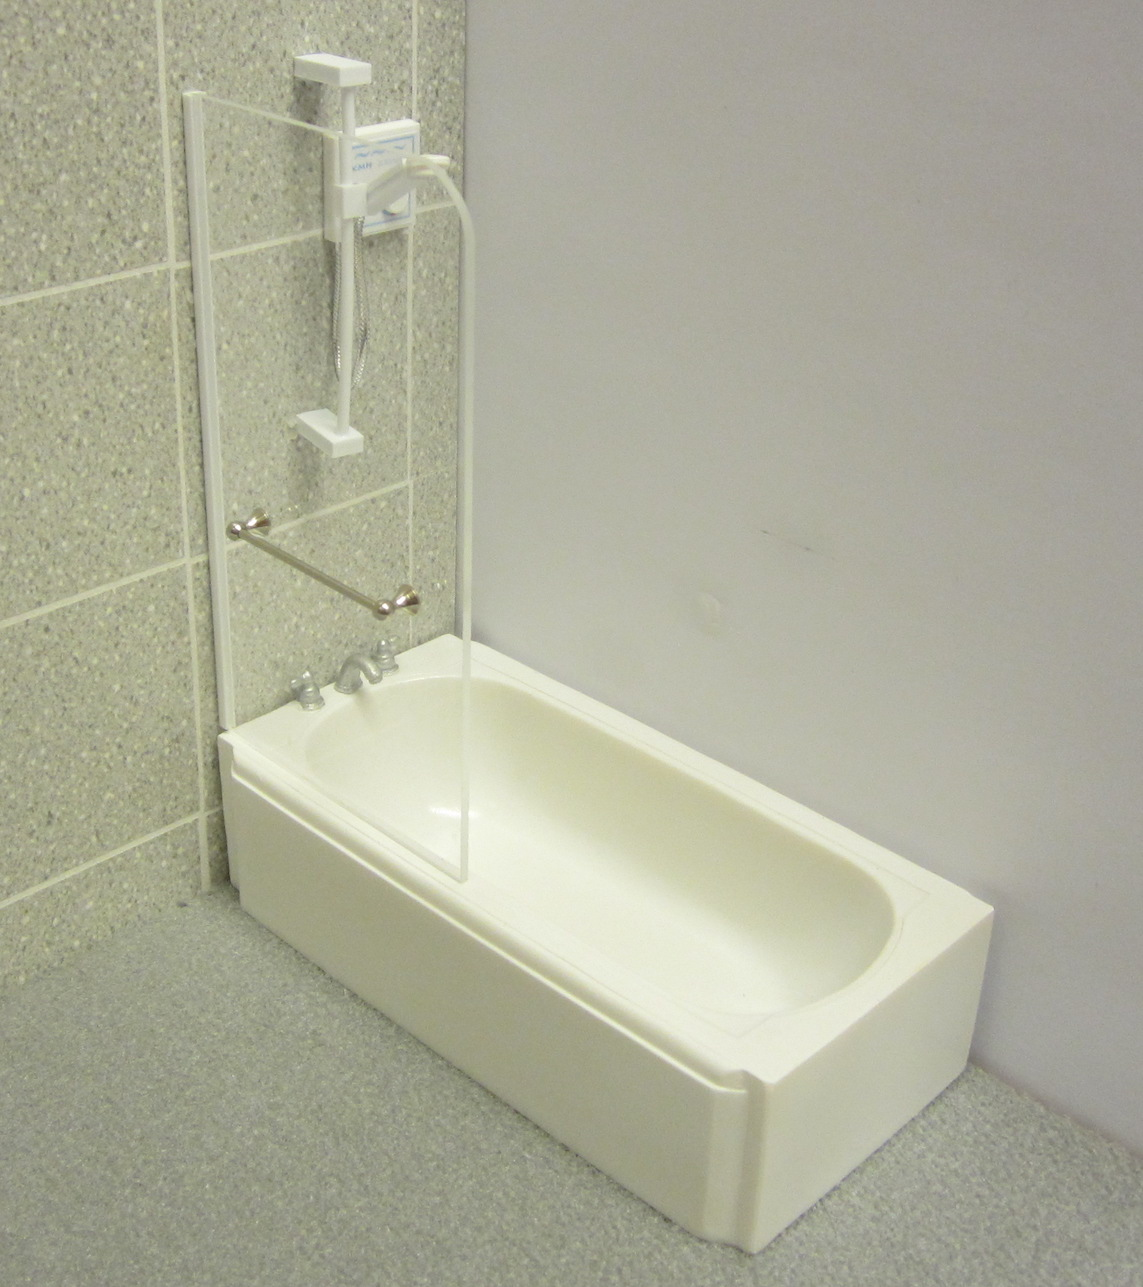 Bath shower screen kit